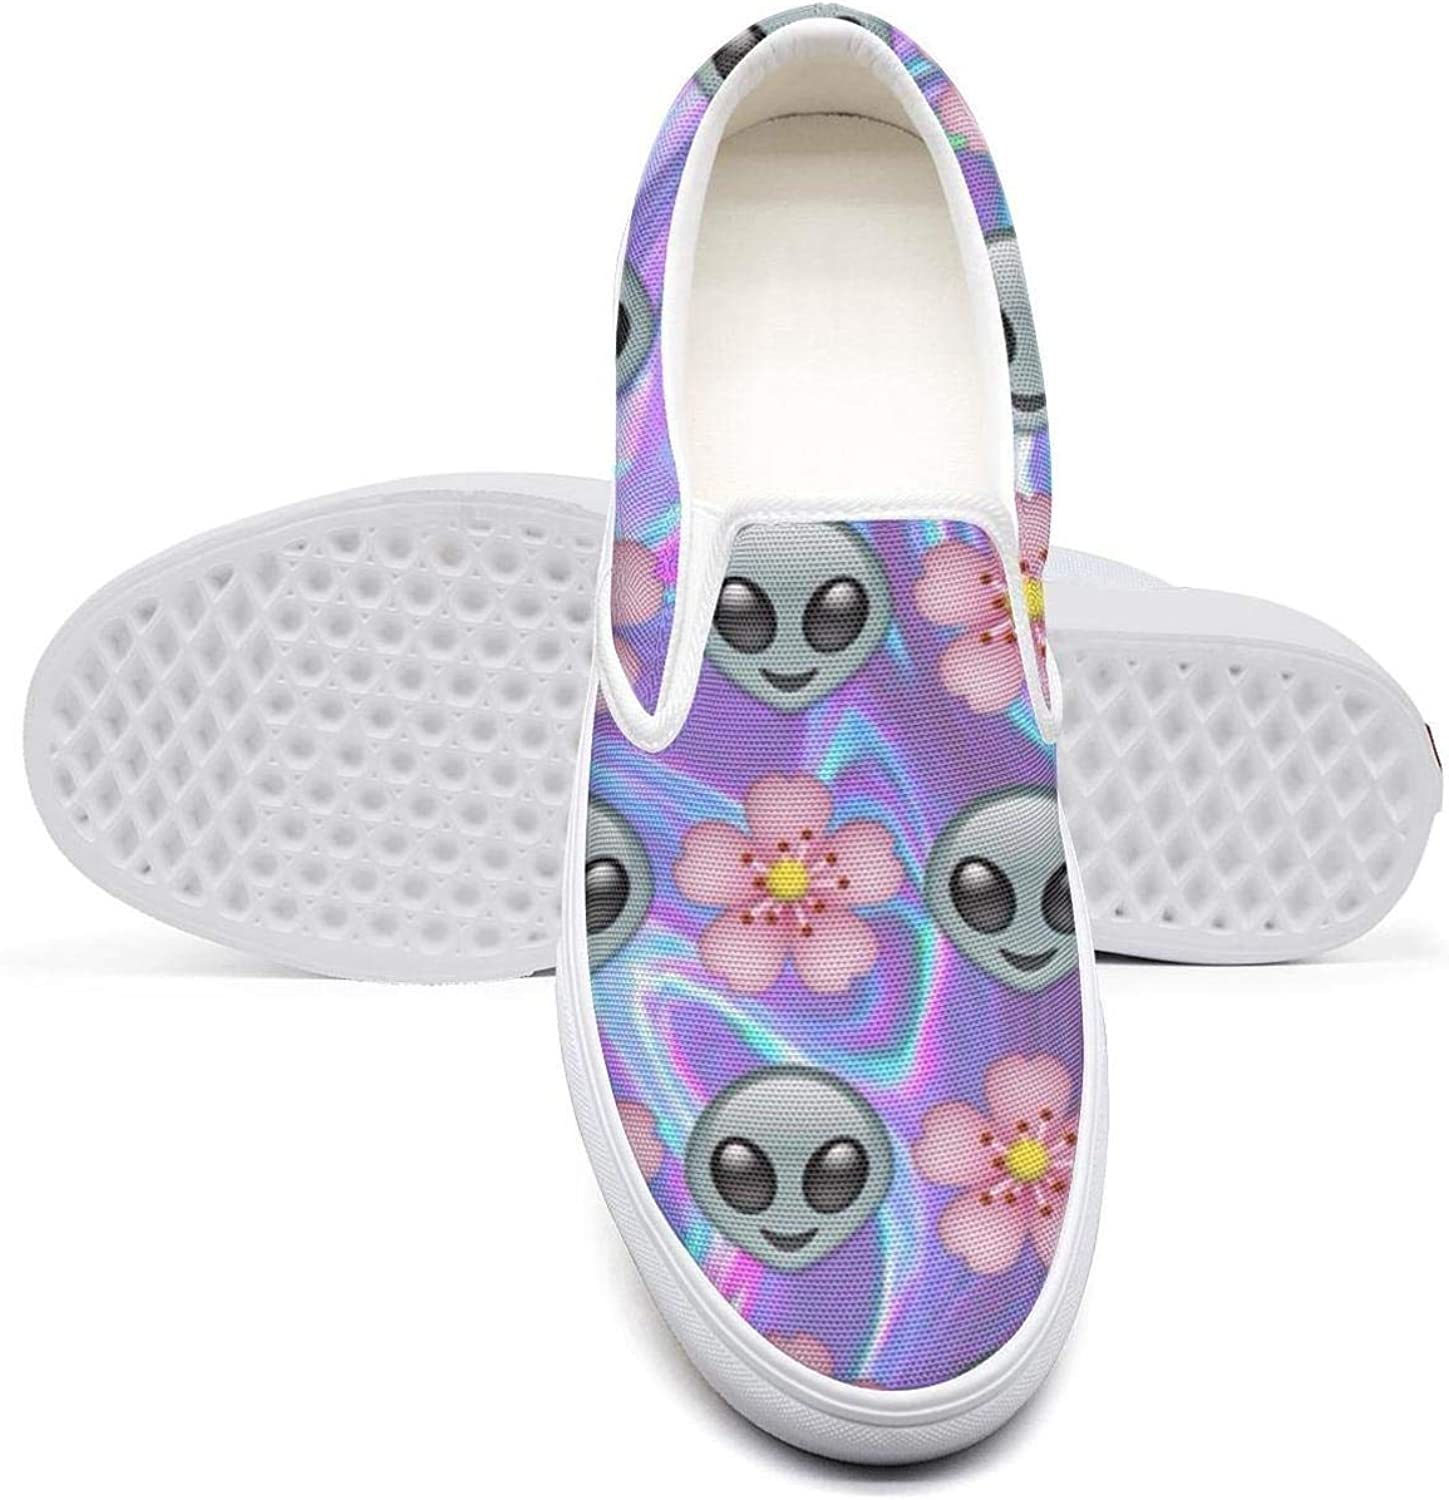 Ditto.1 bluee Alien Astronaut Led Women's convas Loafers Slip ons Casual Fashion